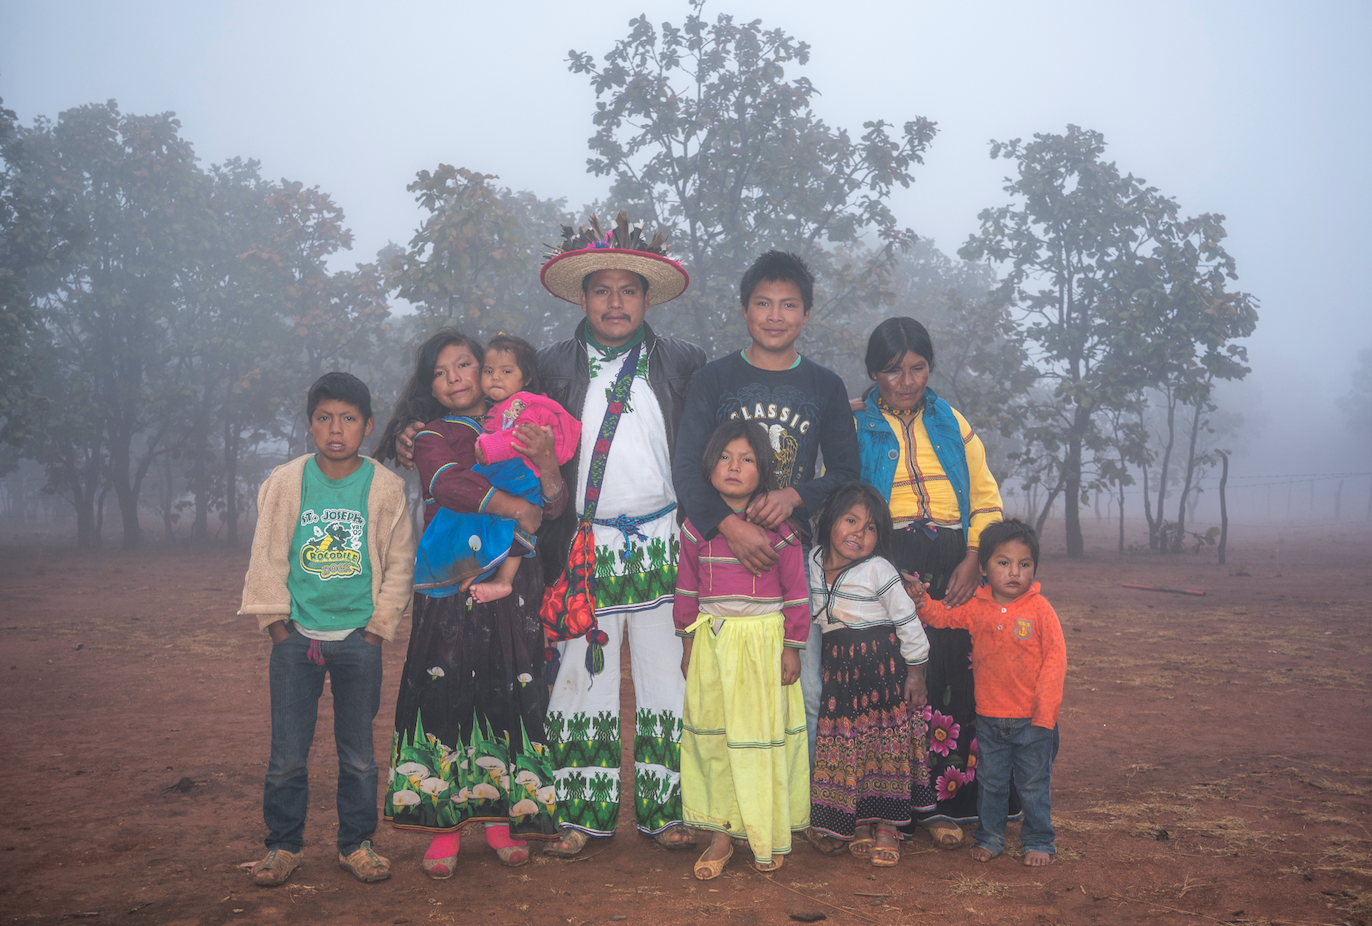 Huichol family with the mountains in the background in a hazy landscape.